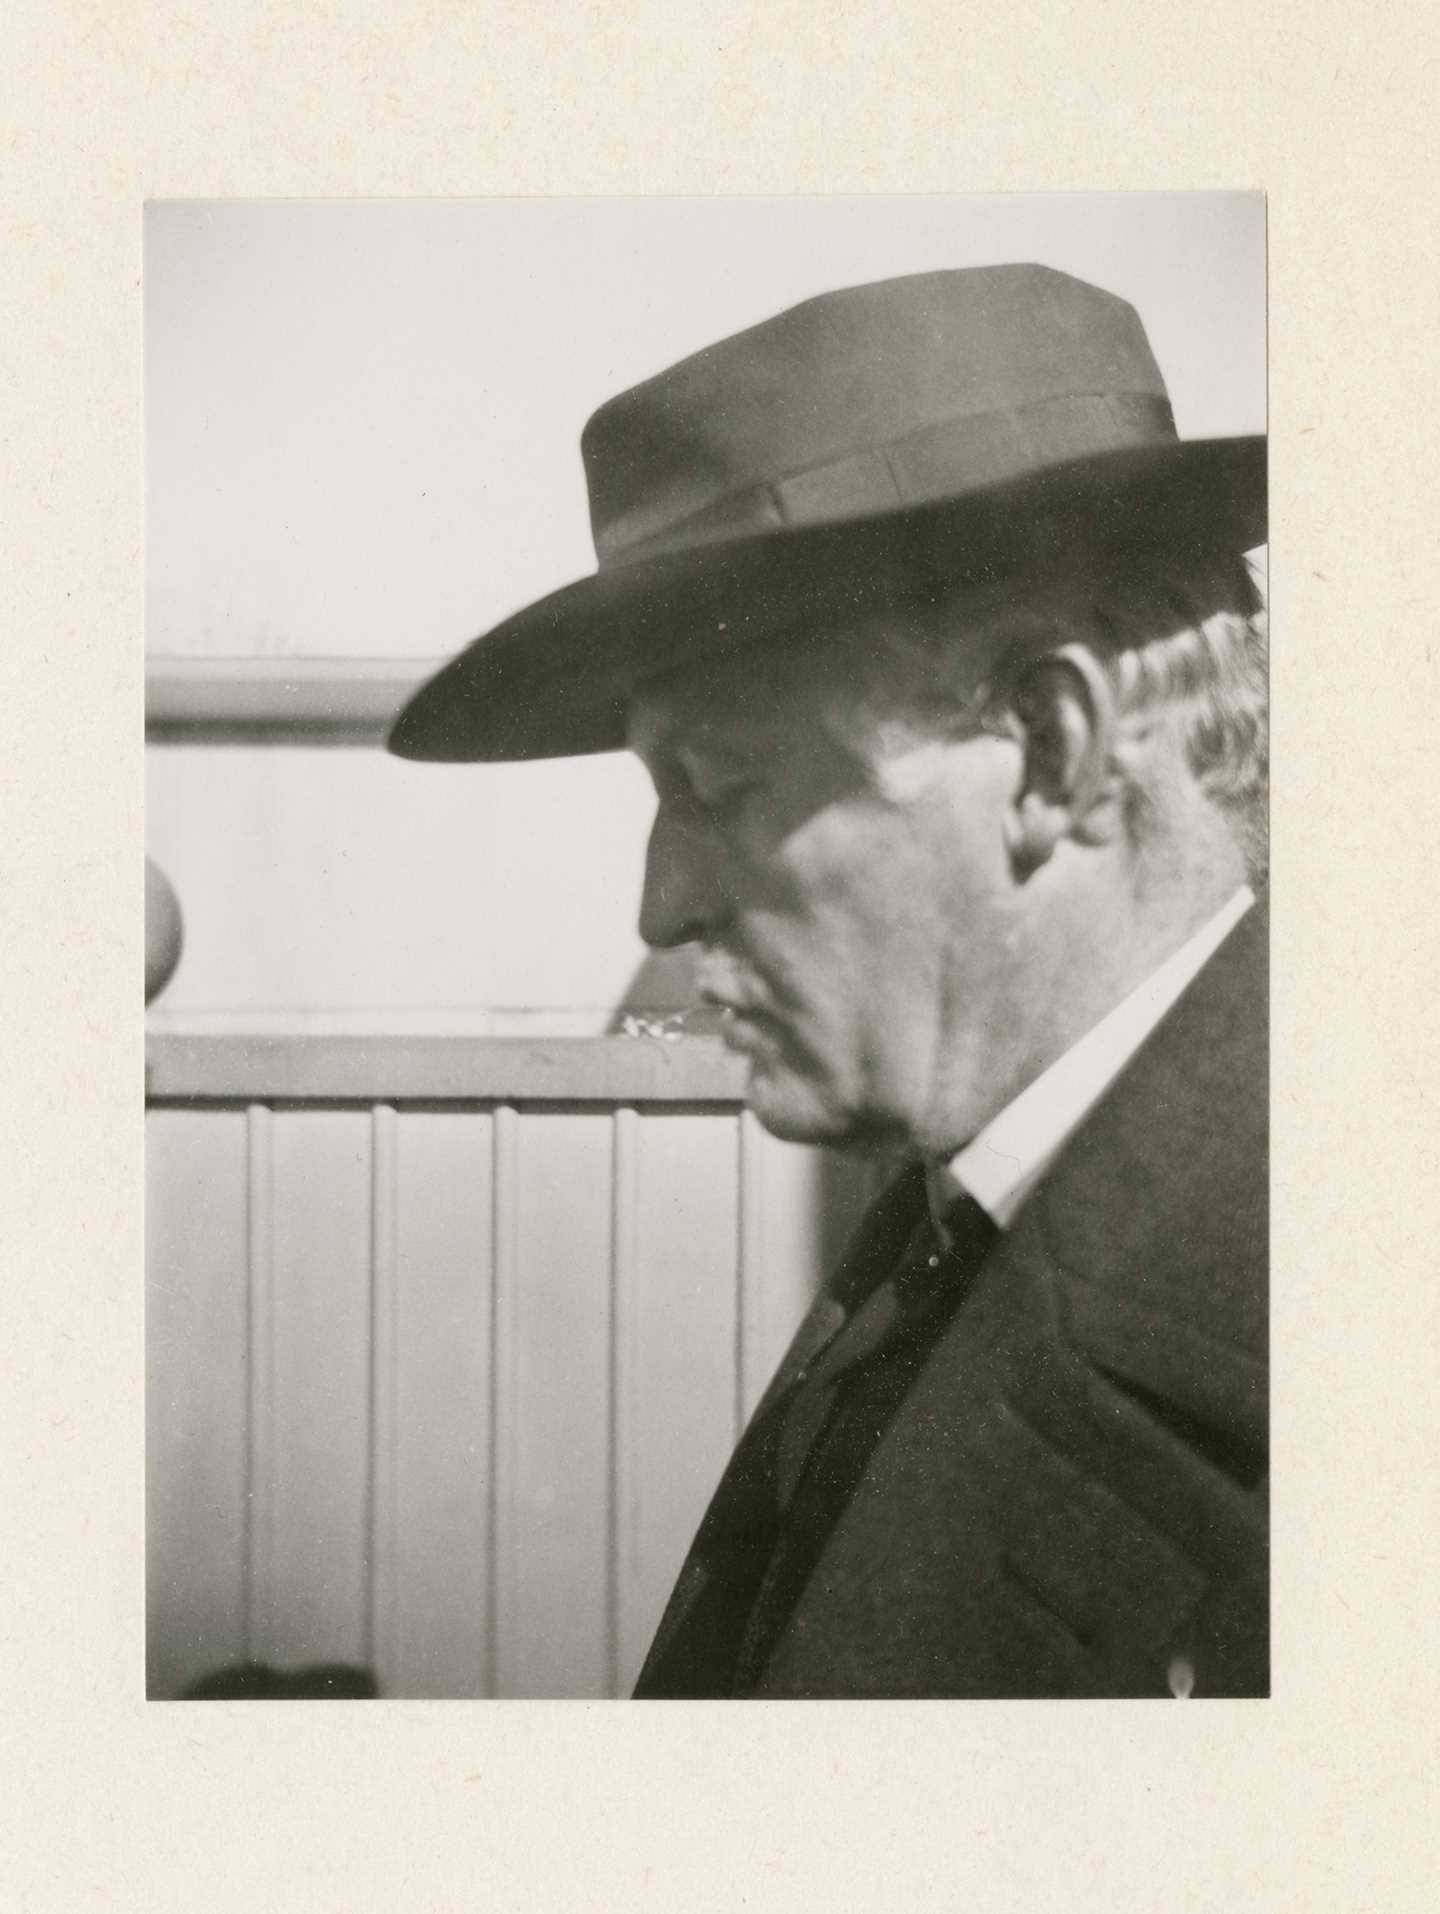 Edvard Munch: Self-portrait in profile with hat, on the steps of the winter studio at Ekely, 1930. Photo © Munchmuseet